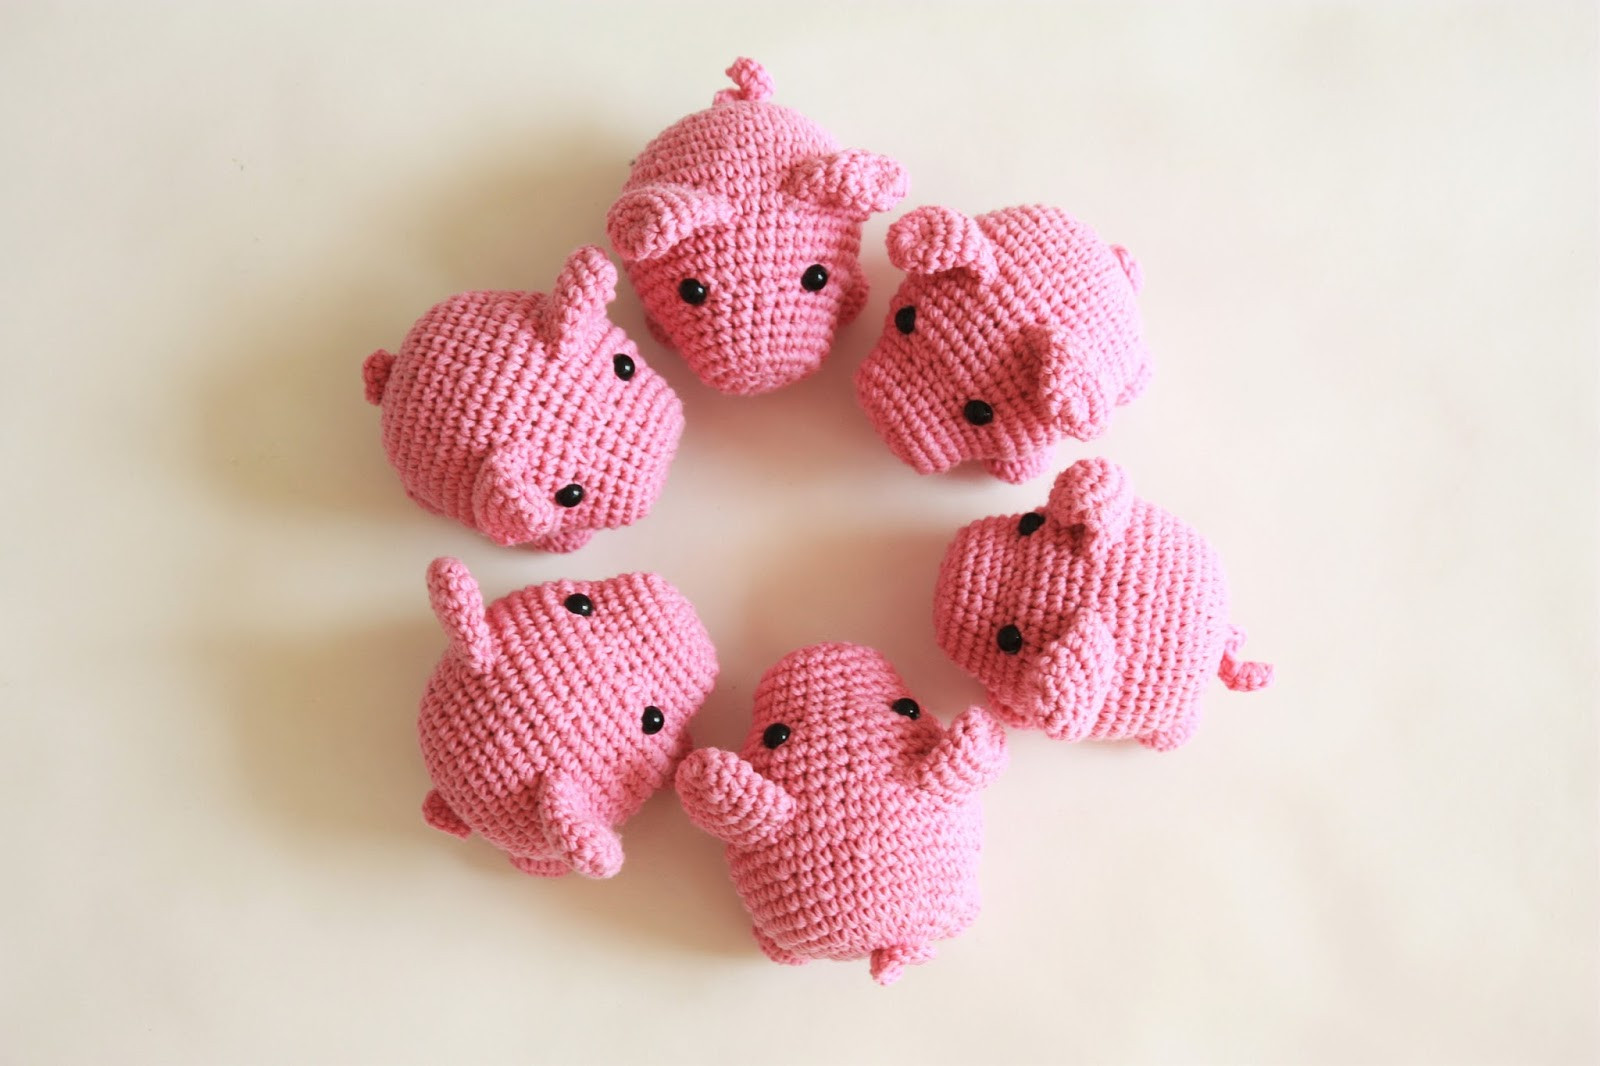 Crochet Pig Pattern Luxury Happyamigurumi New Amigurumi Pattern Little Pig Pdf Of Adorable 49 Models Crochet Pig Pattern